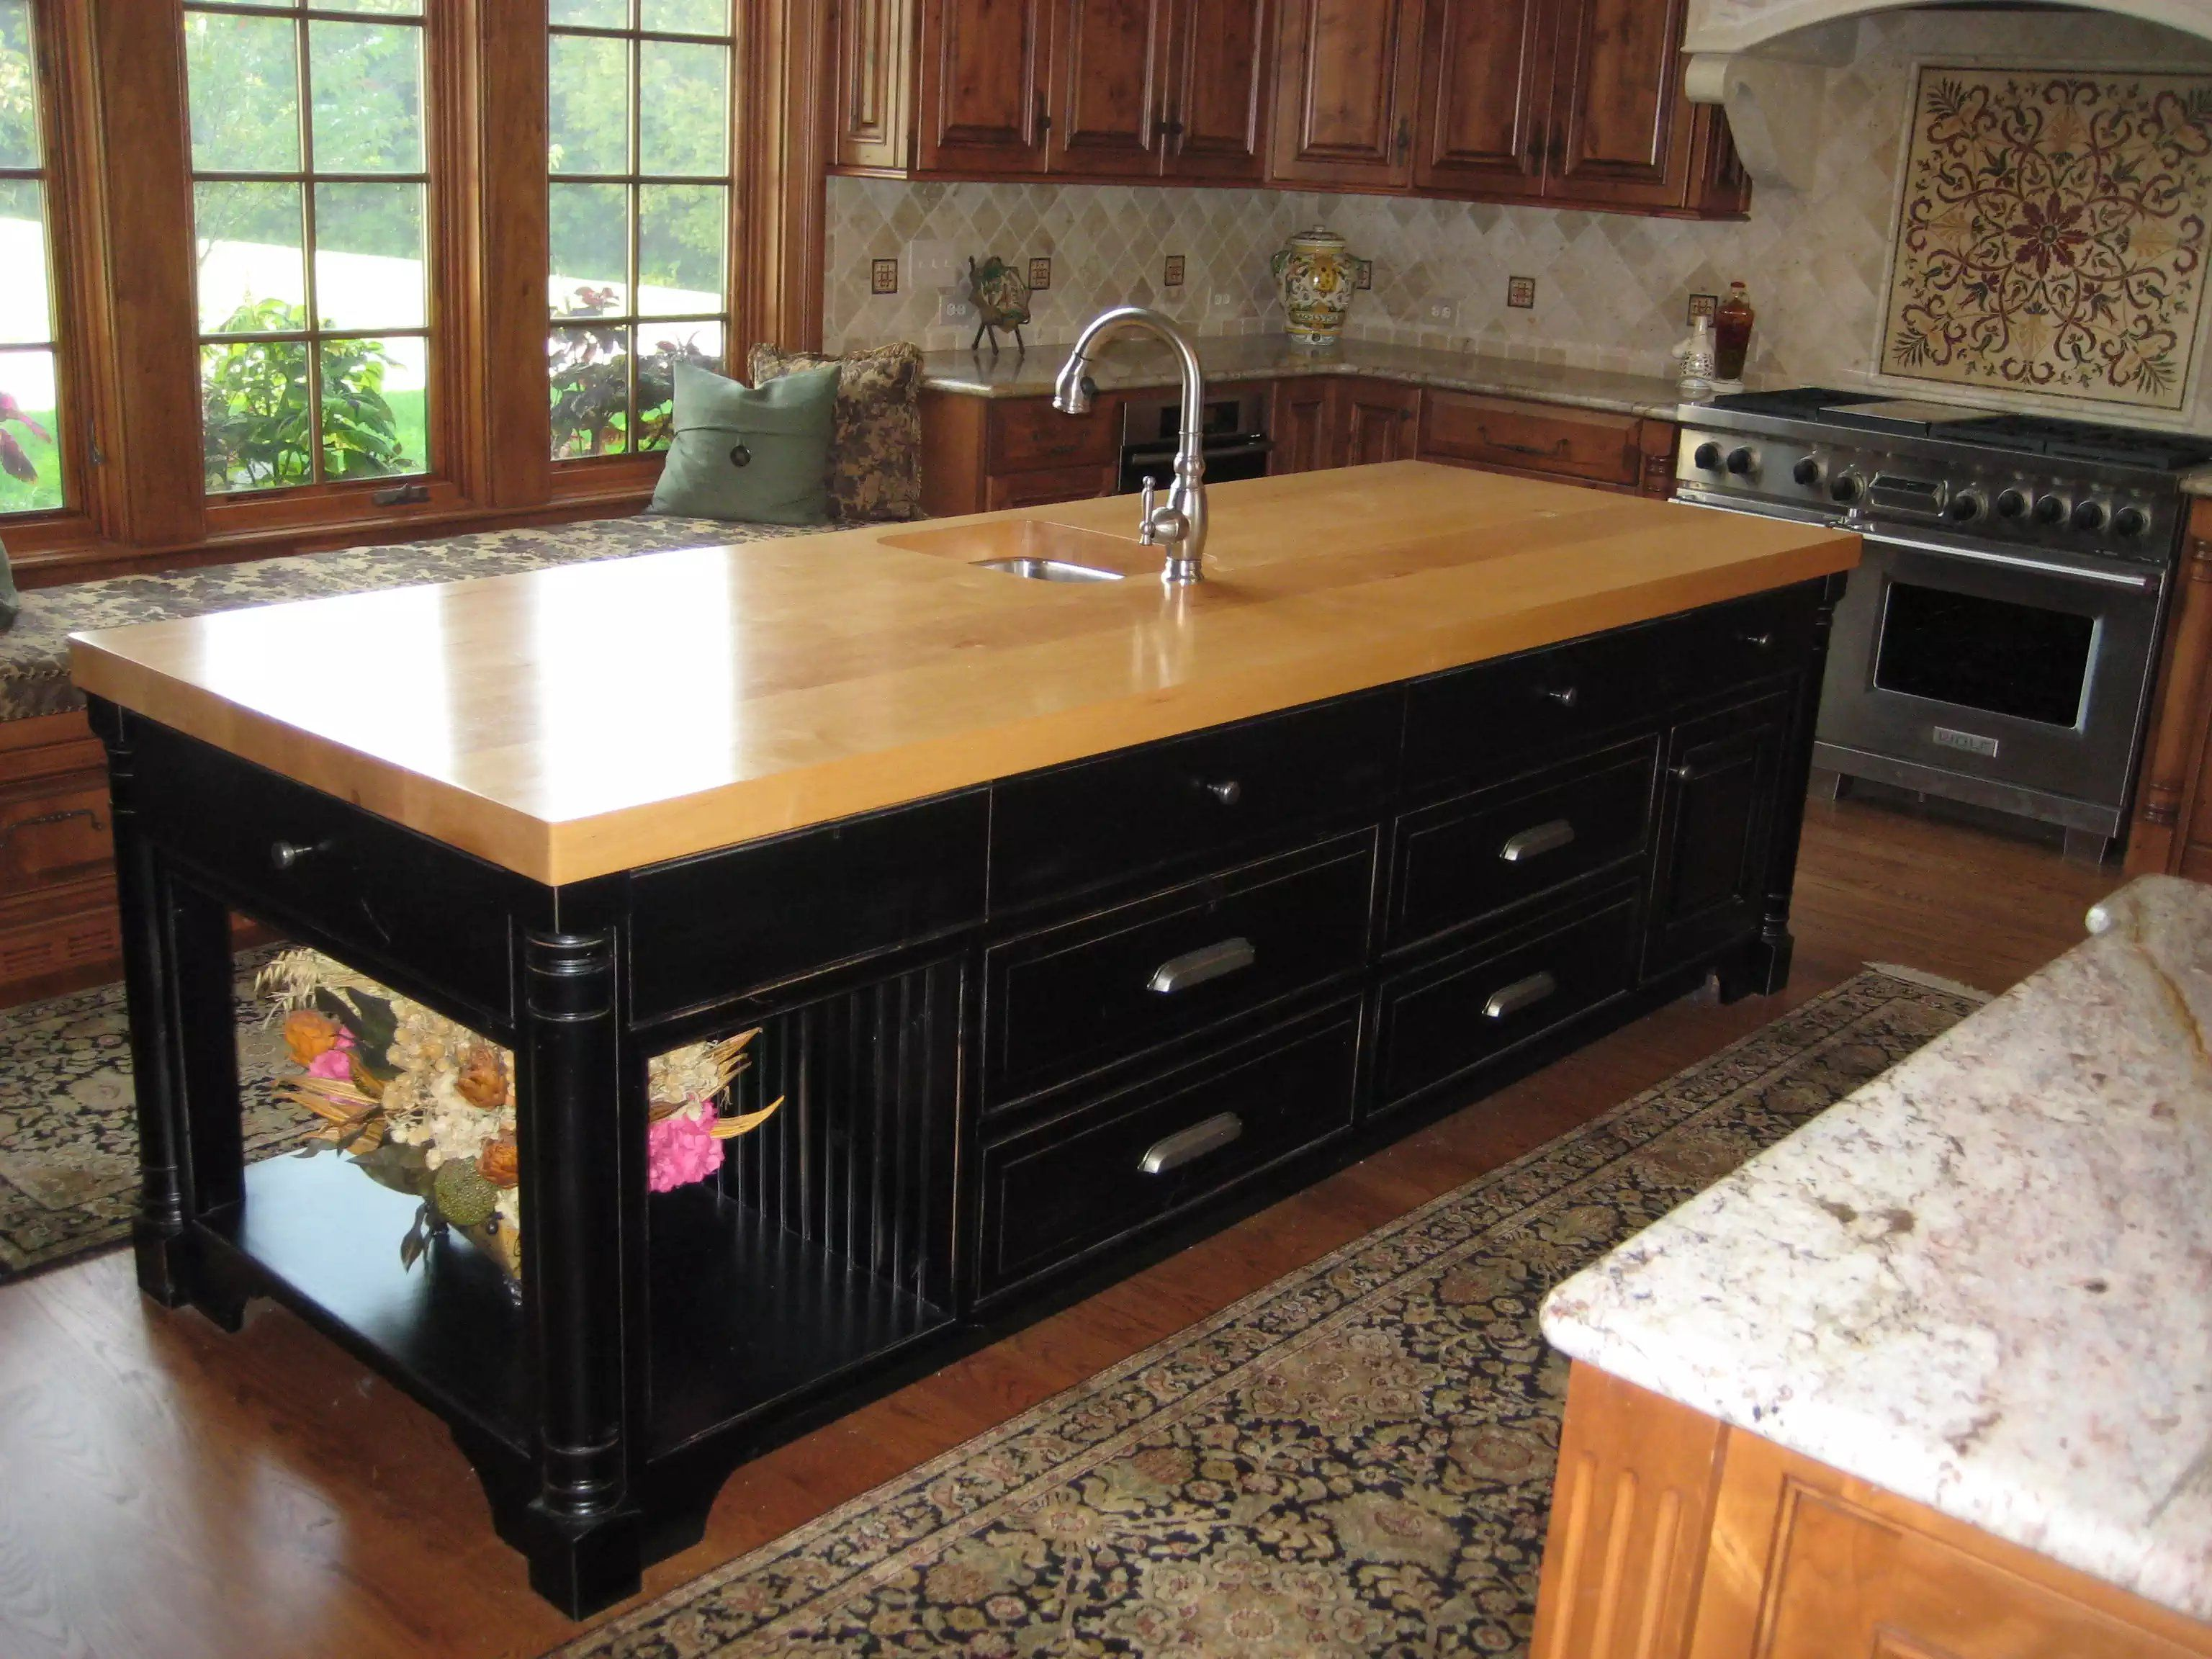 wood walnut sinks undermount overmount wooden drainboard countertops with countertop